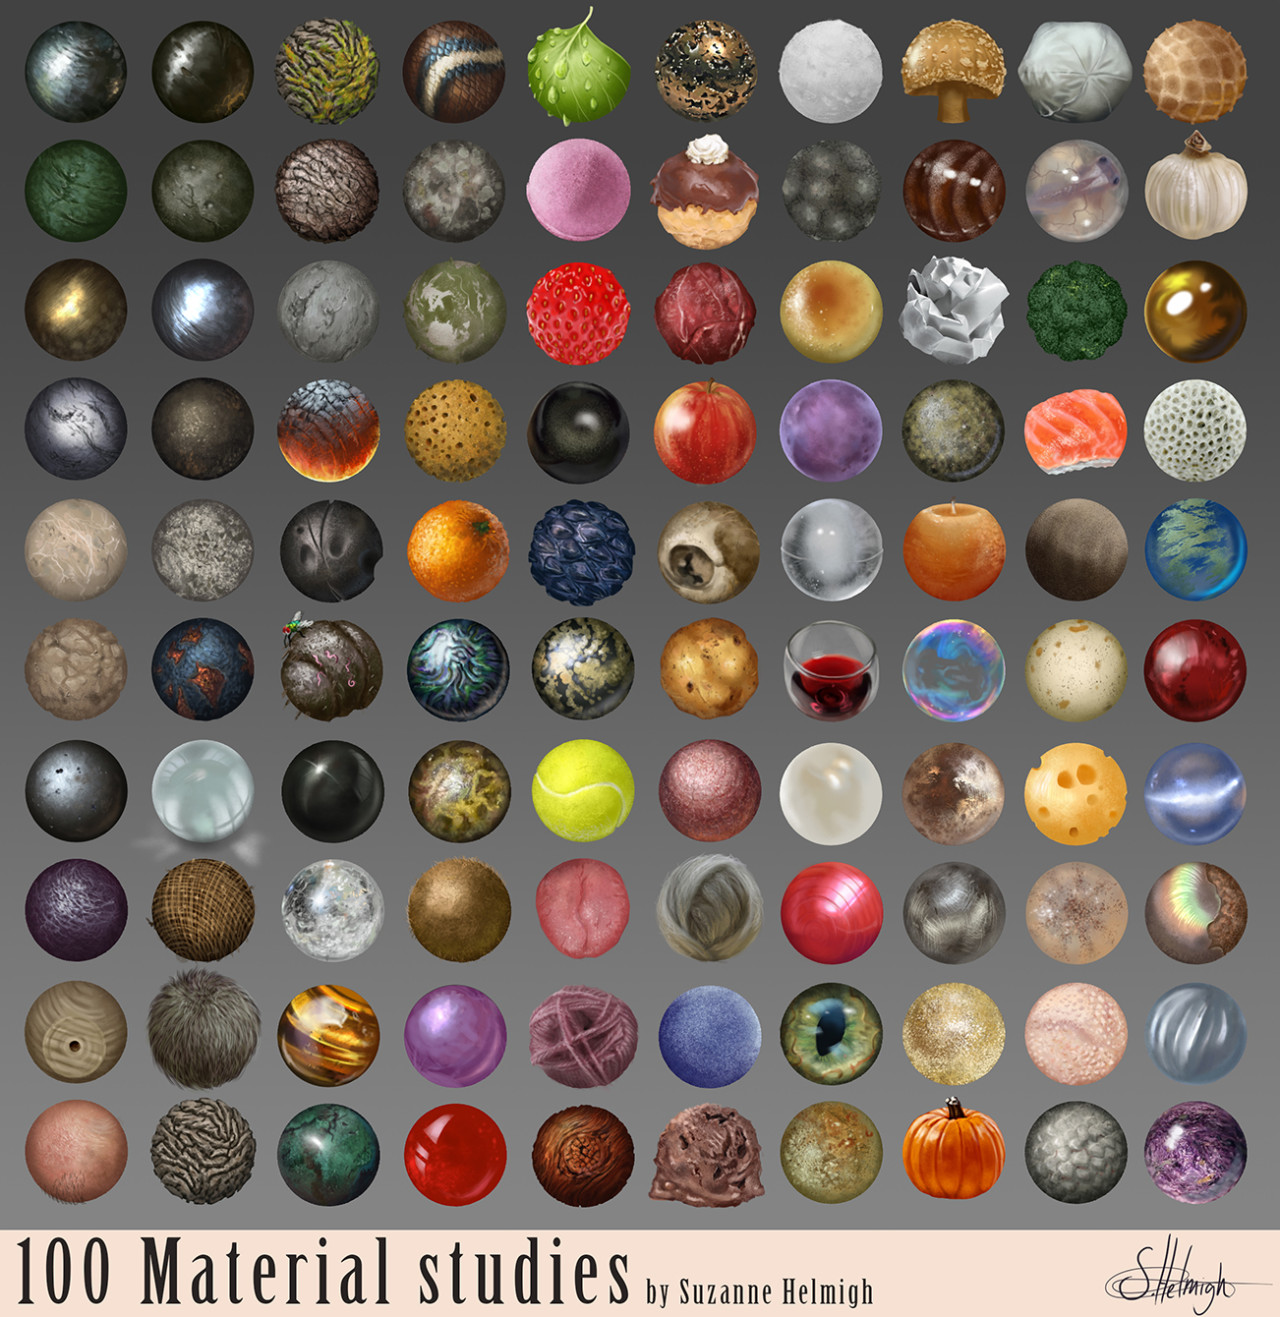 material_studies__by_suzanne_helmigh-d5q2bo9